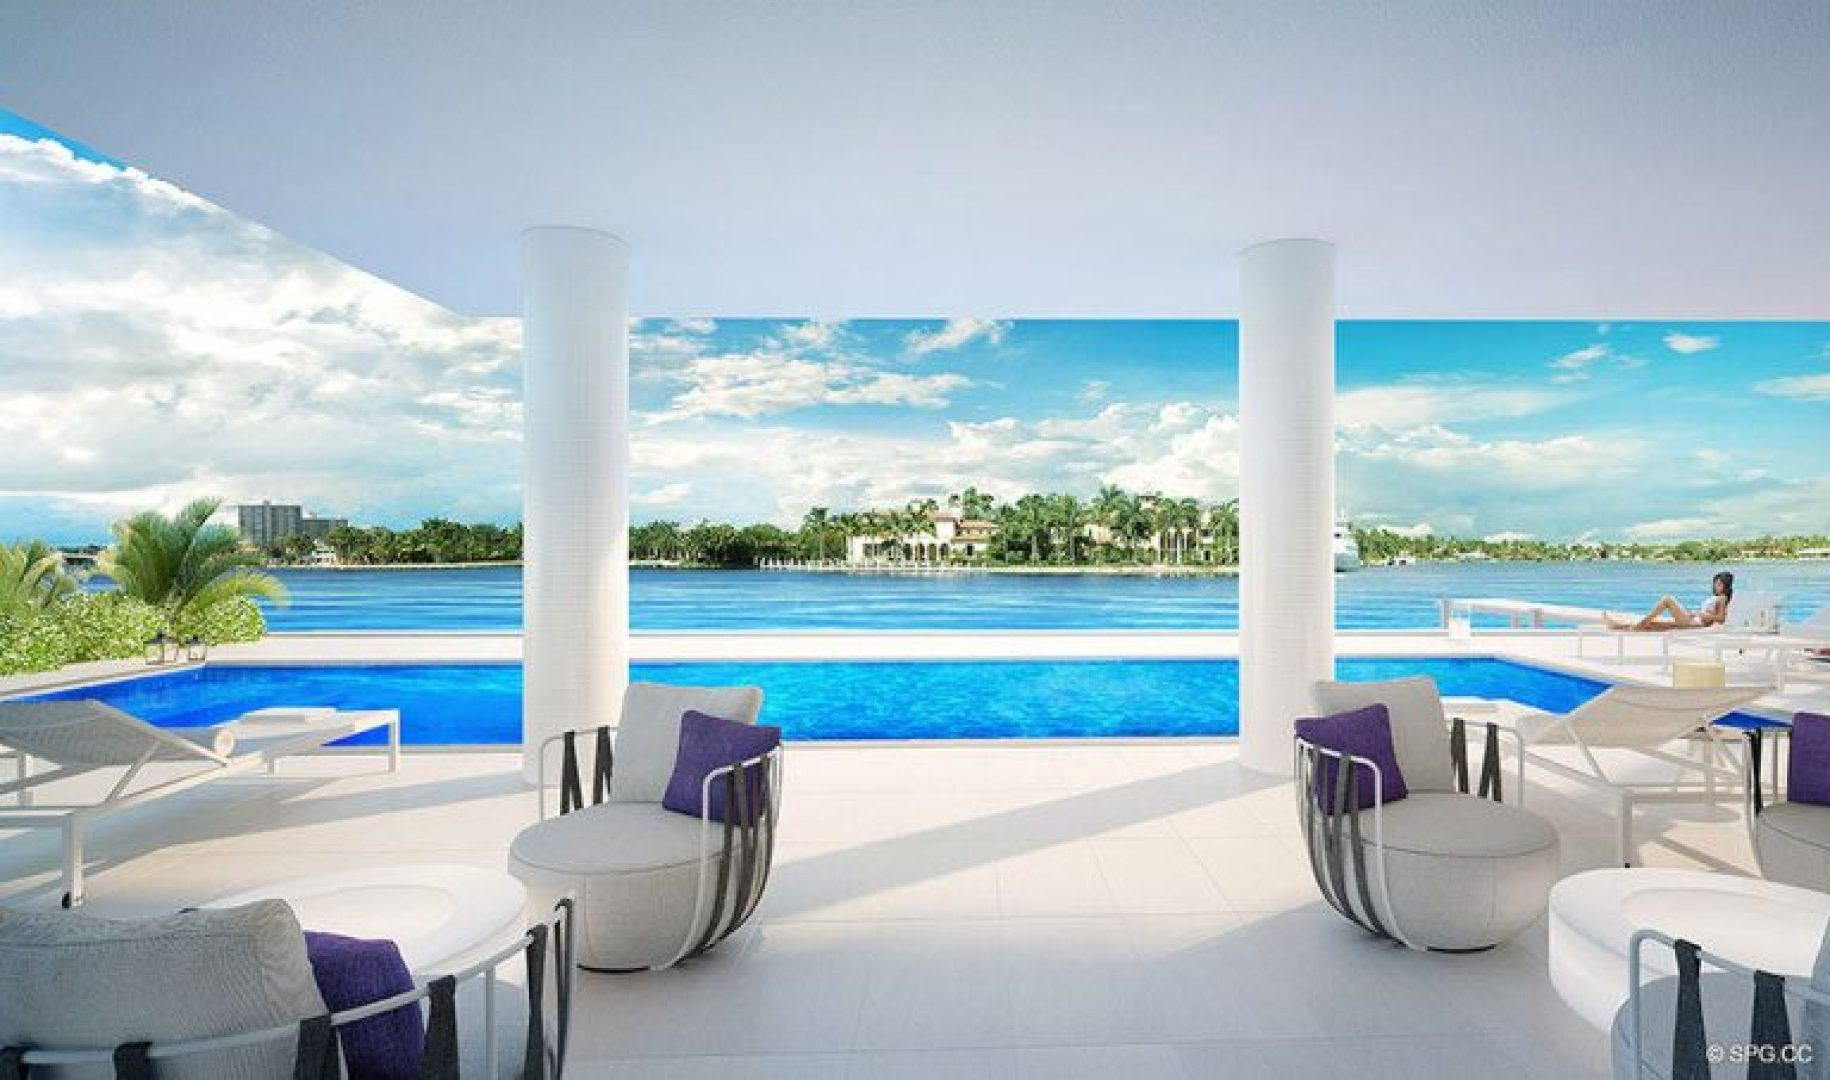 Intracoastal Pool Area at 321 at Water's Edge, Luxury Waterfront Condos in Fort Lauderdale, Florida 33304